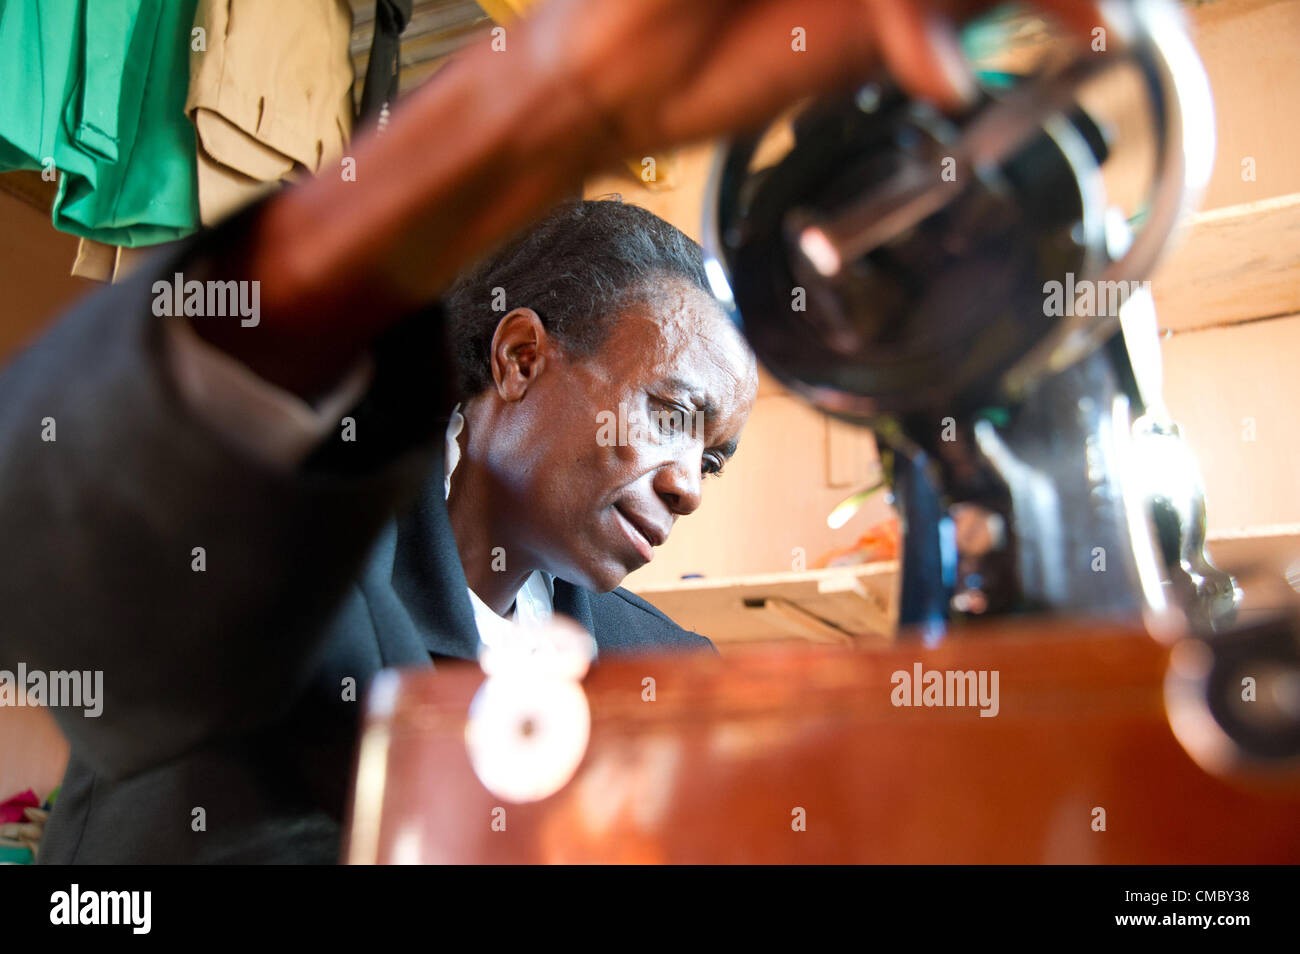 June 7, 2012 - Madabe (Village, Zimbabwe - June 7, 2012, Mangwe, Zimbabwe - Seen here working at her sewing machine, - Stock Image